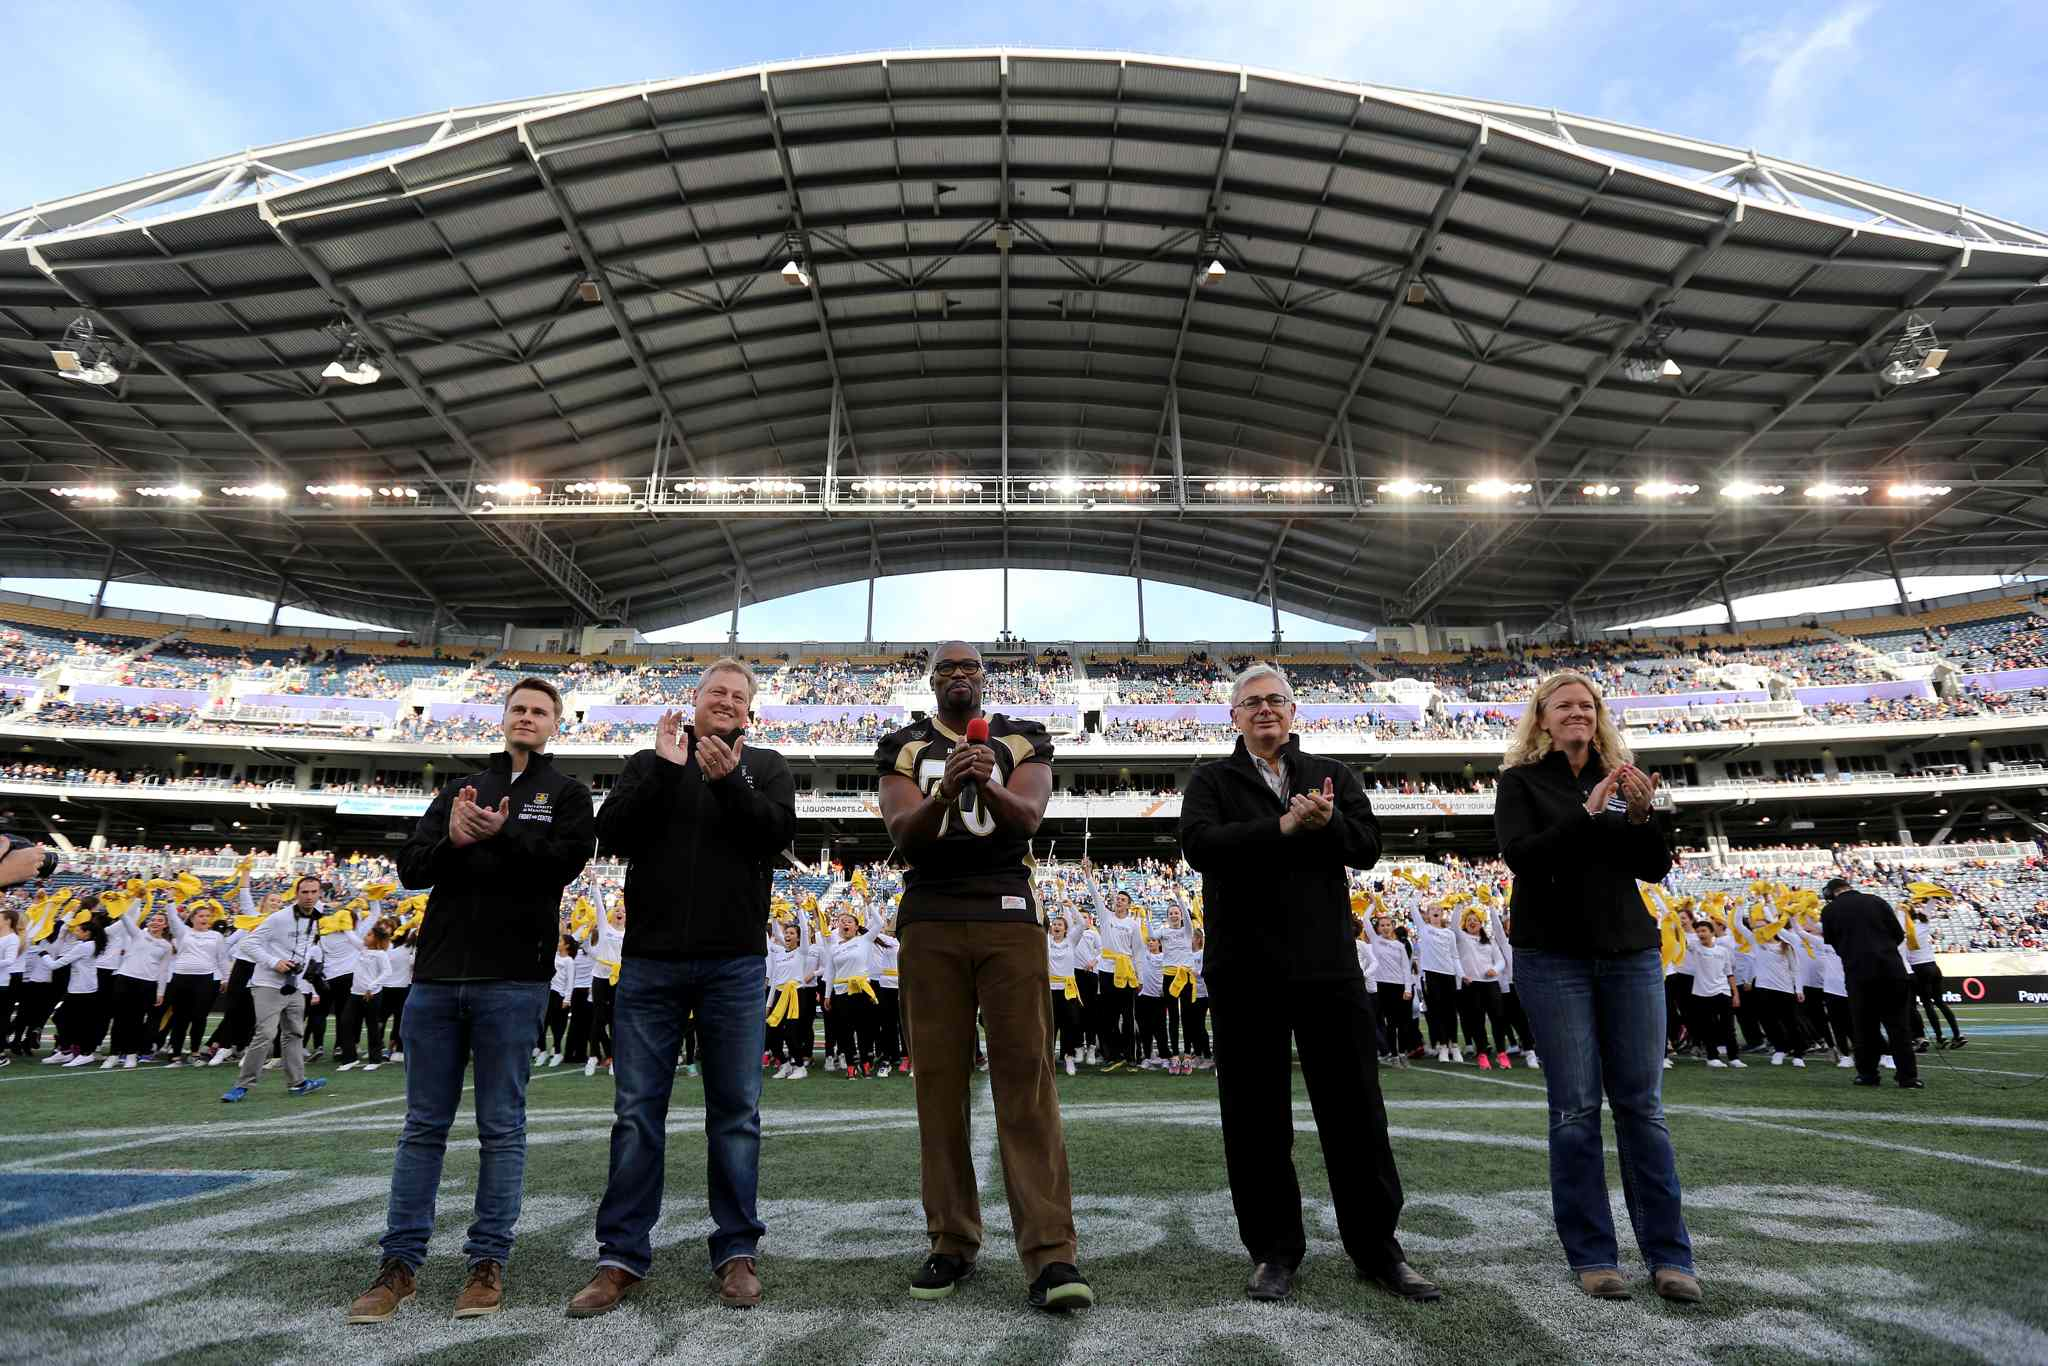 Jeremiah Kopp, UMSU President, Paul Soubry, campagin team president, Israel Idonije, David Barnard, University President of U of M, Kim Metcalf, Alumni Association President, helping kick off University of Manitoba's $500M Front and Centre campaign during halftime of the football game between the Bombers and Eskimos,(TREVOR HAGAN/WINNIPEG FREE PRESS)